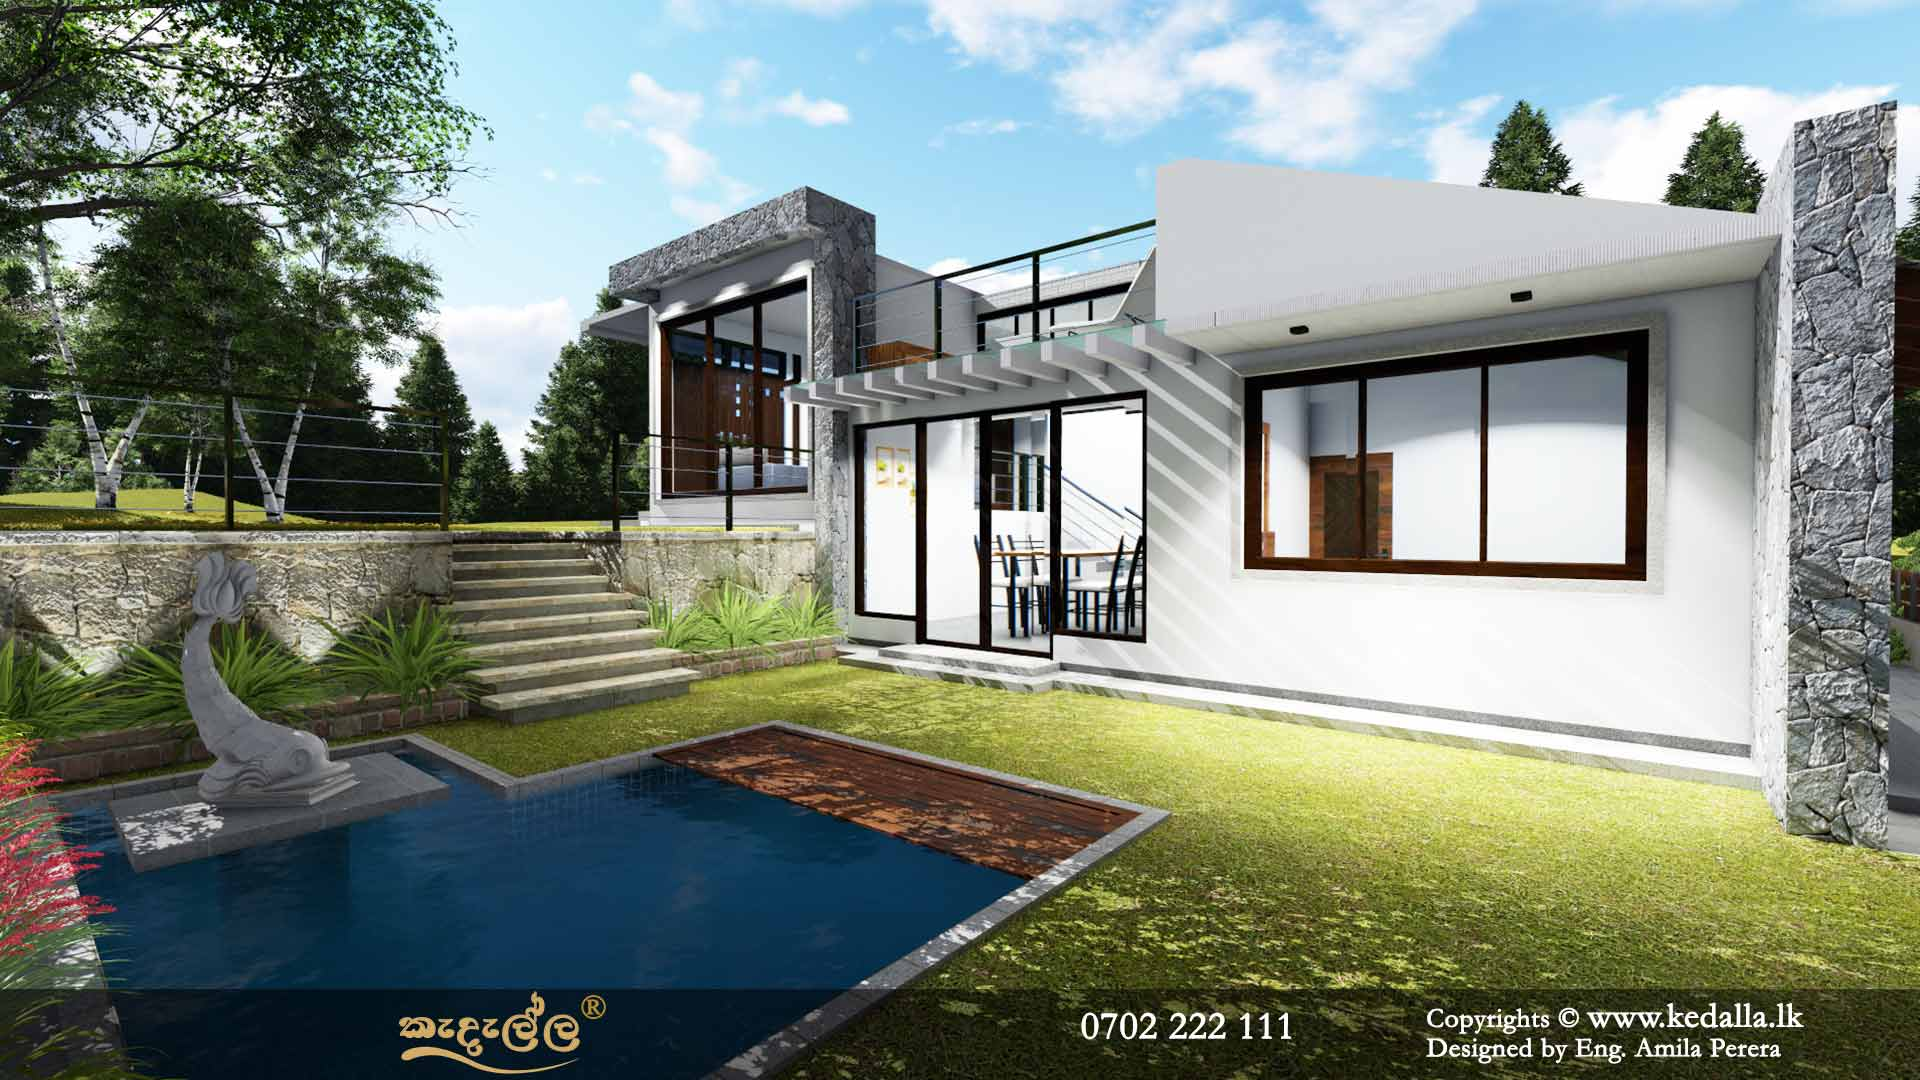 Beautifull Single Story House Plan with Swimming pool designed by building designers in kandy Sri Lanka